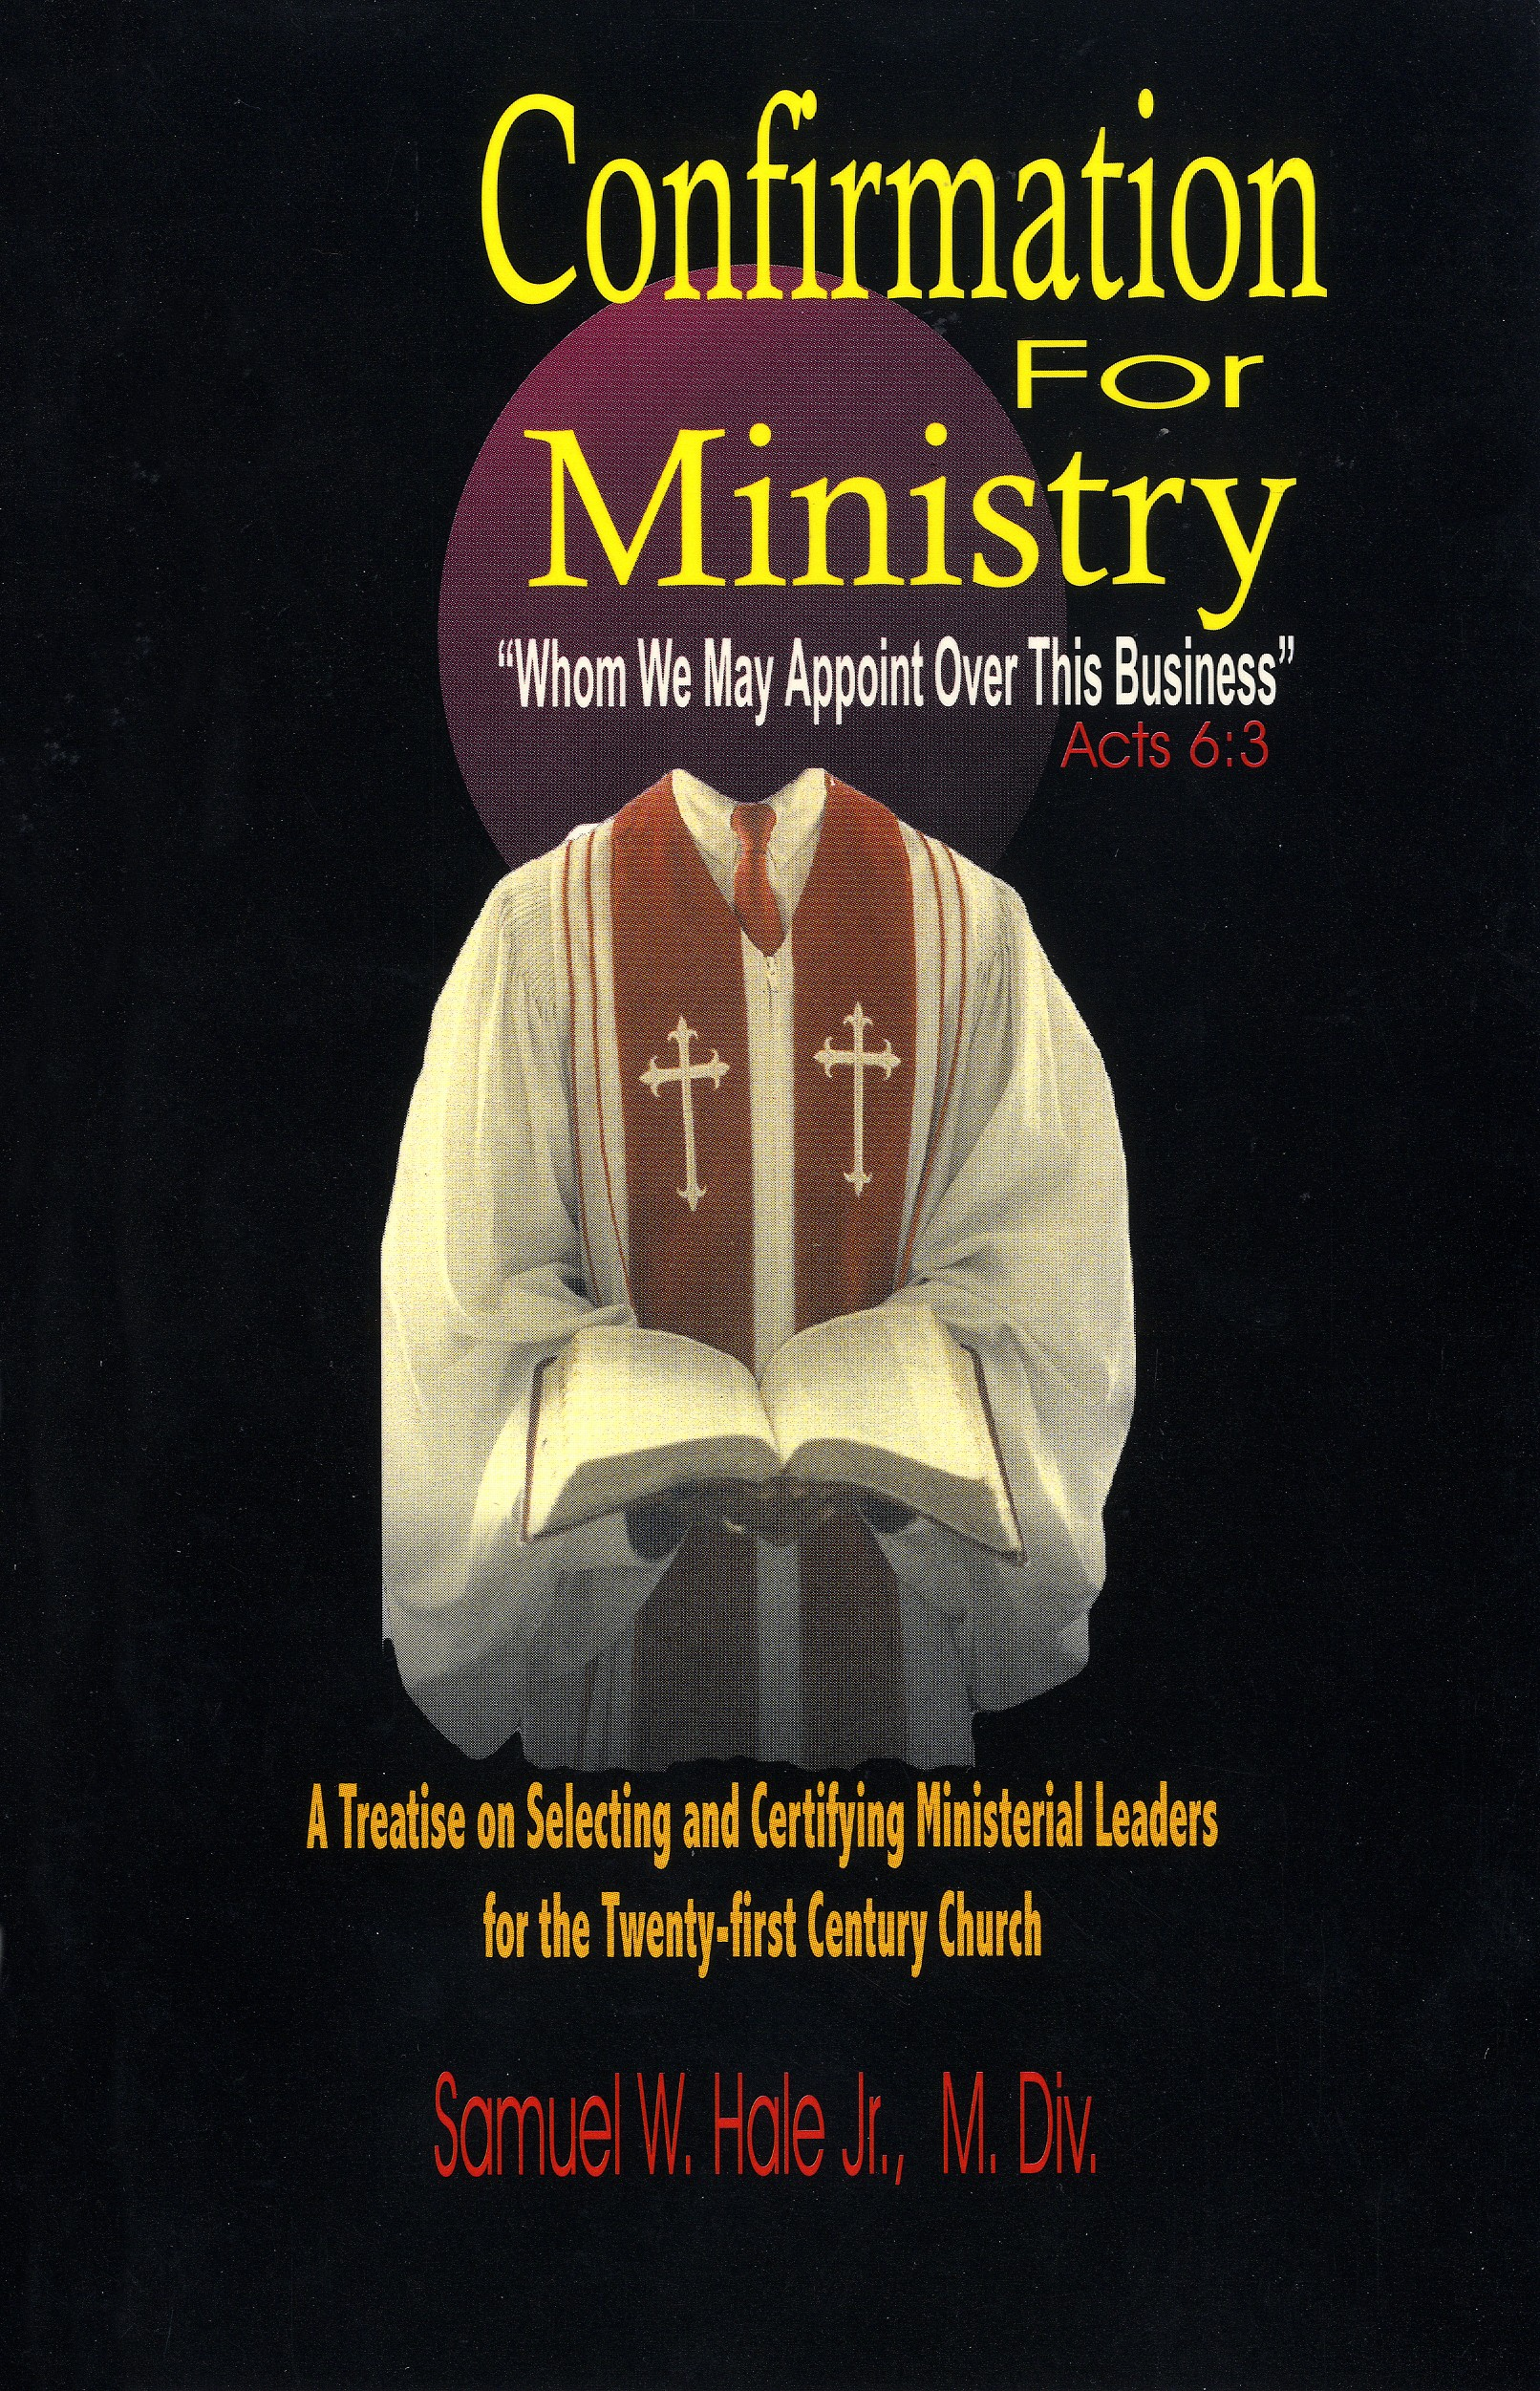 Confirmation for Ministry